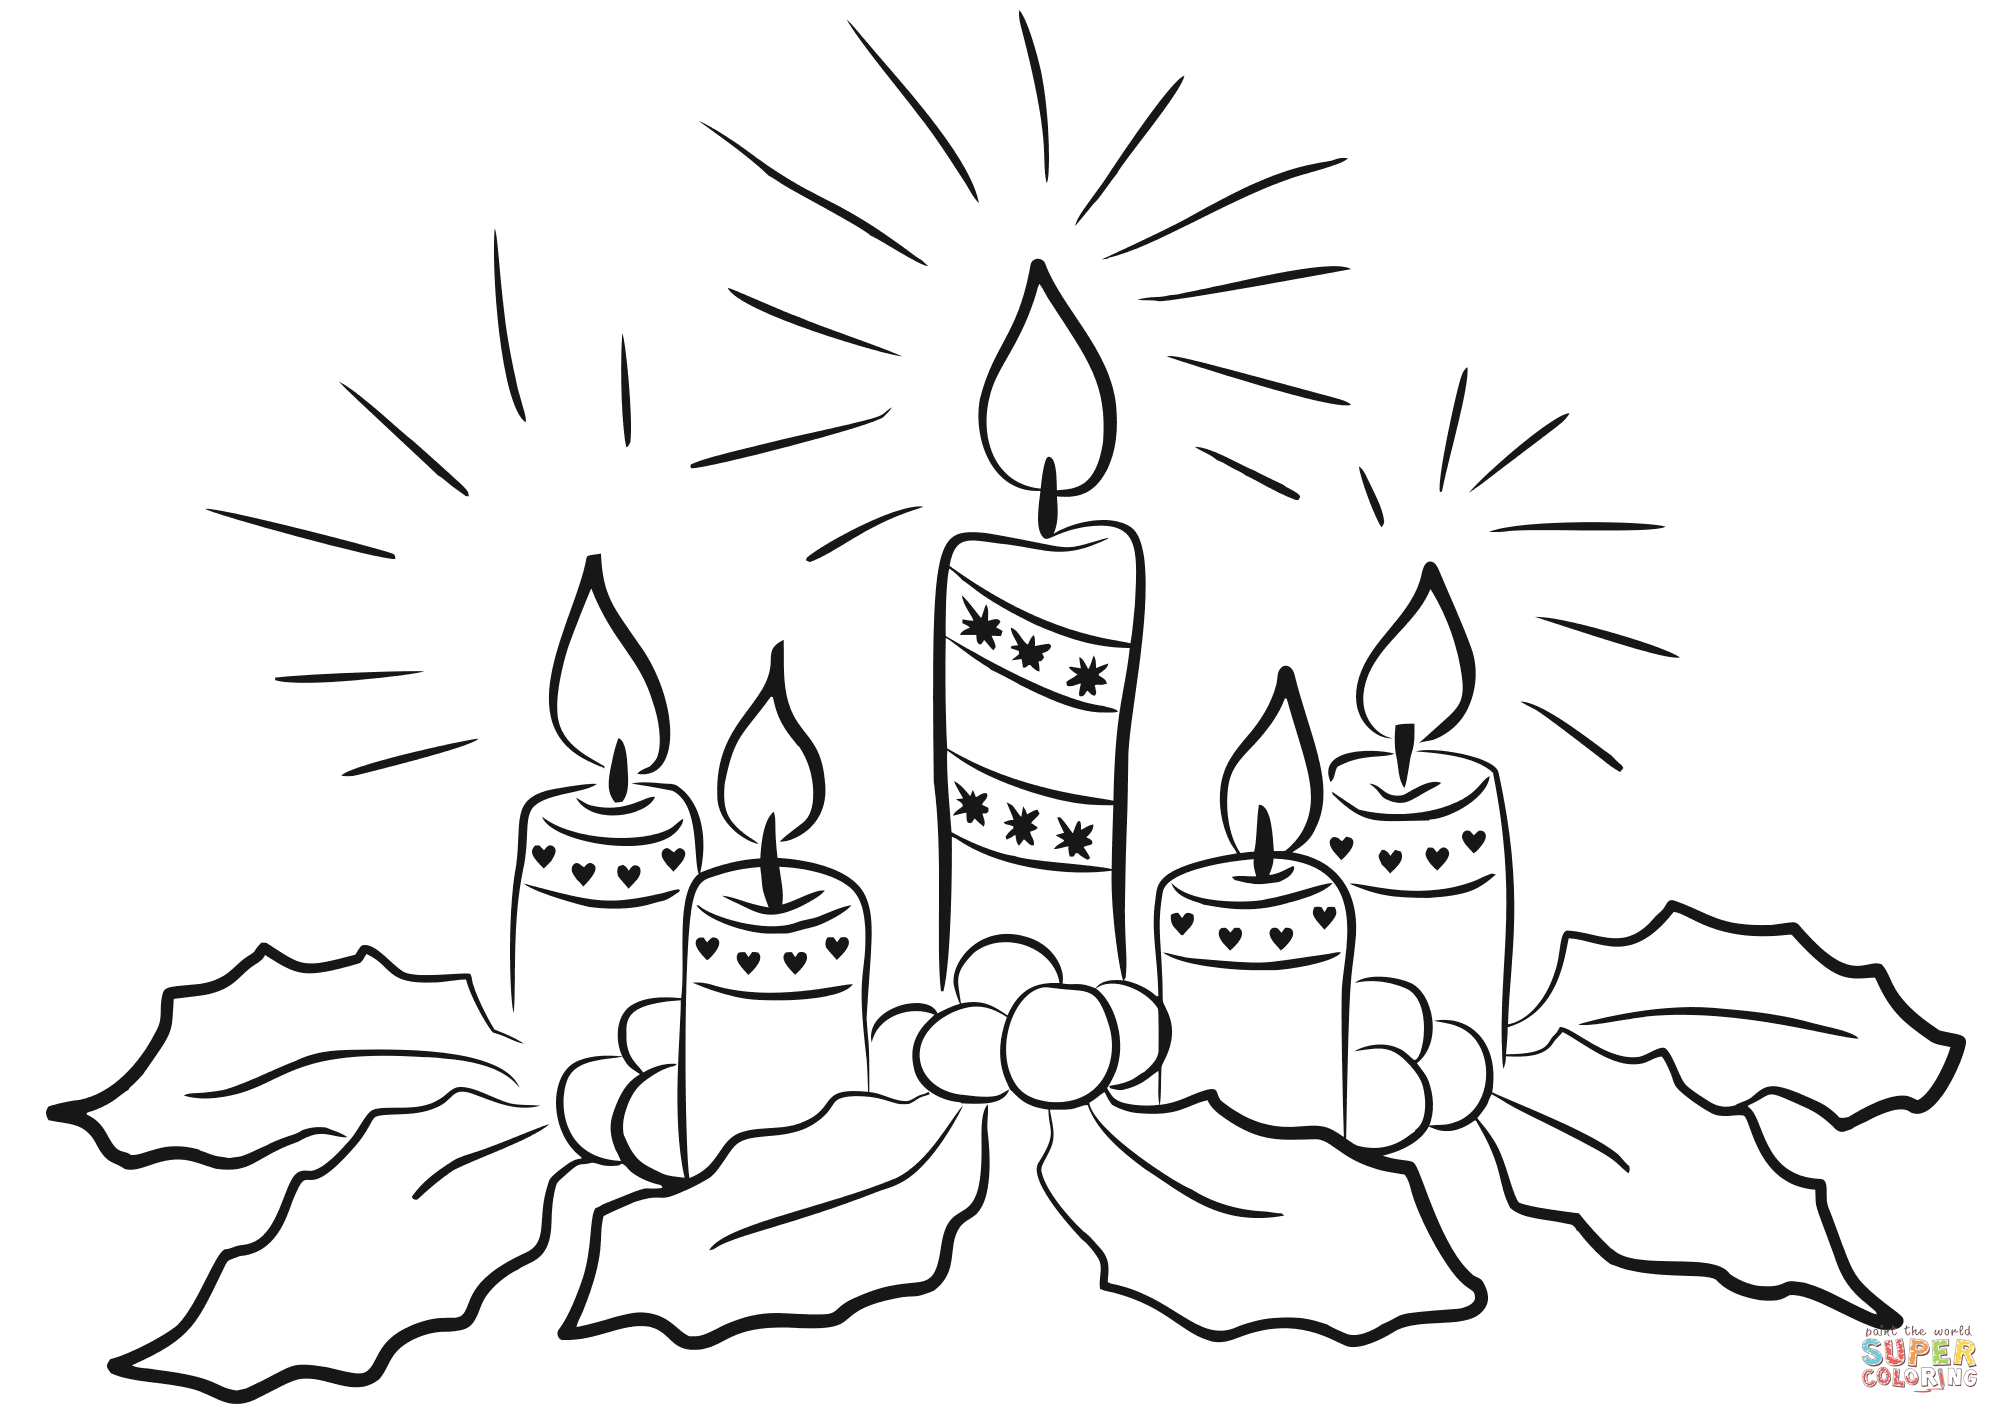 picture of advent wreath for coloring advent coloring pages sketch coloring page for advent coloring picture wreath of